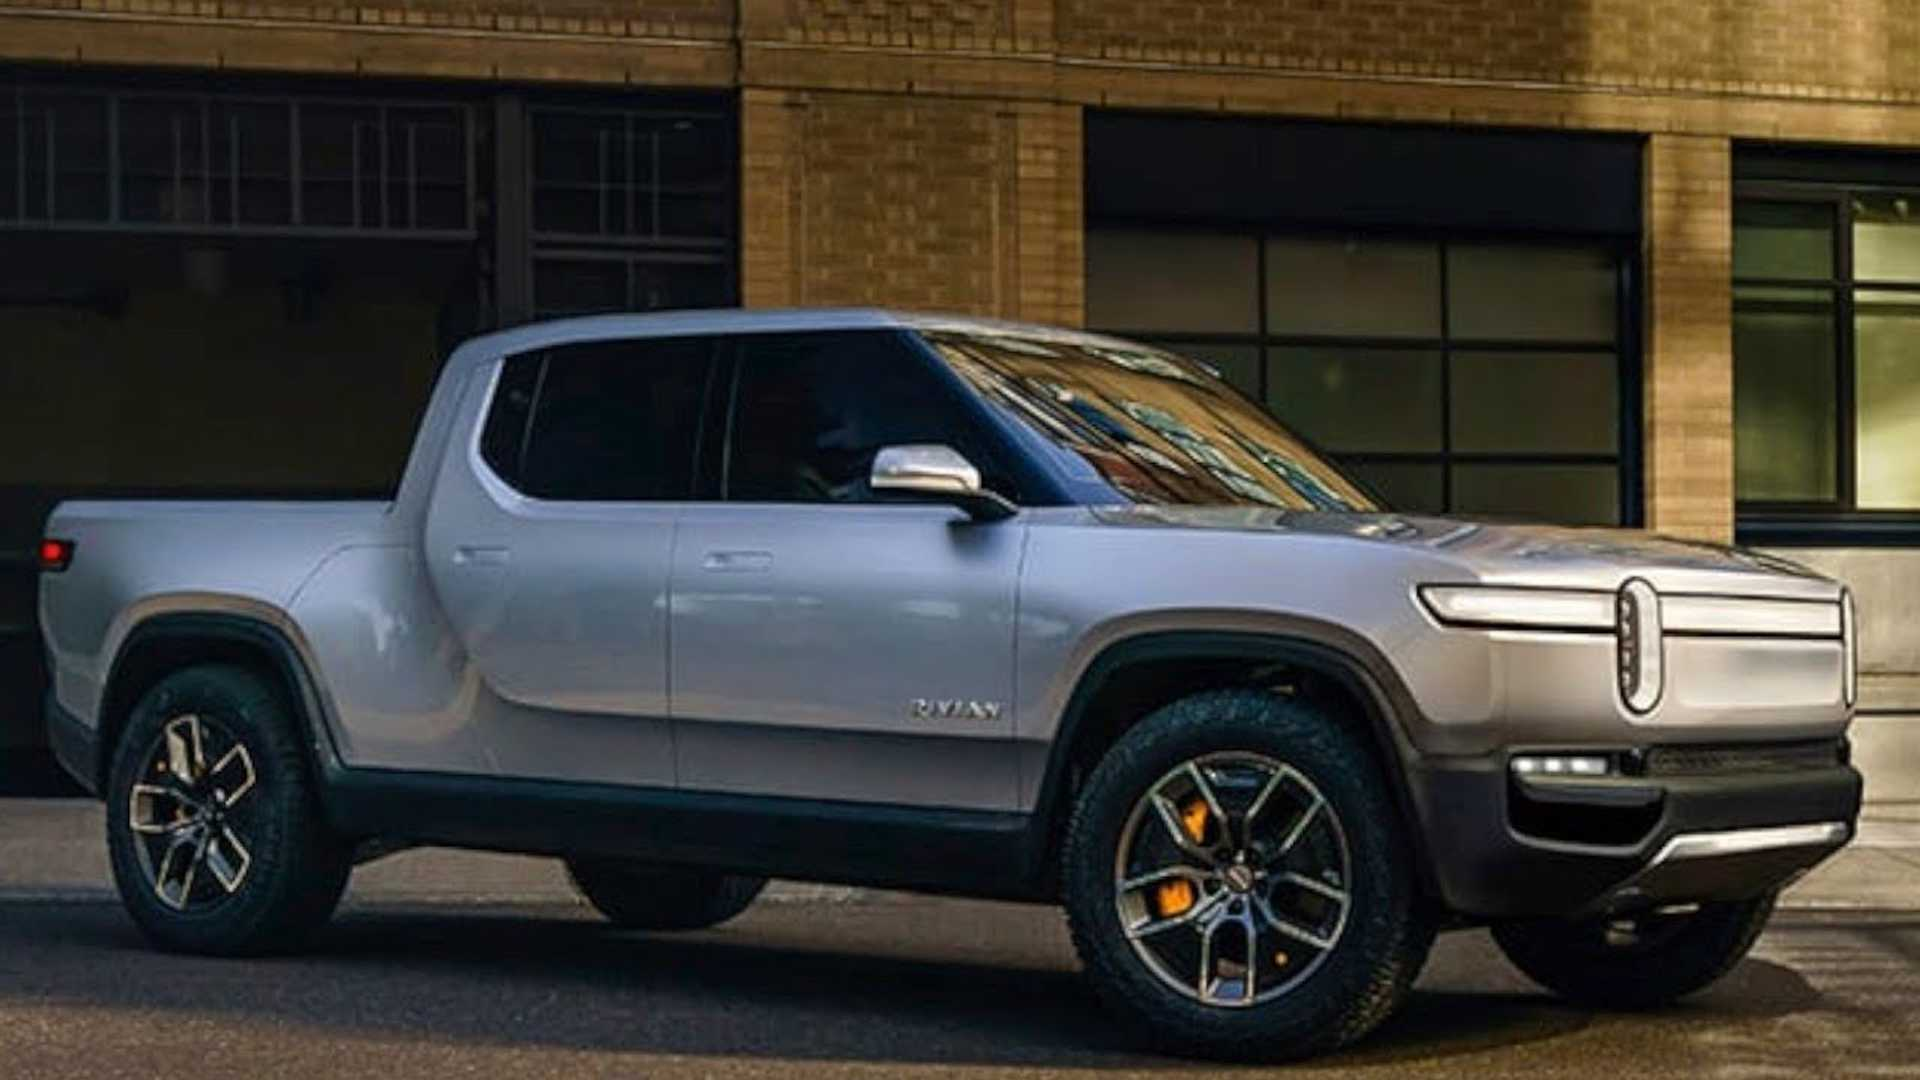 See The Rivian R1T In More Detail Here